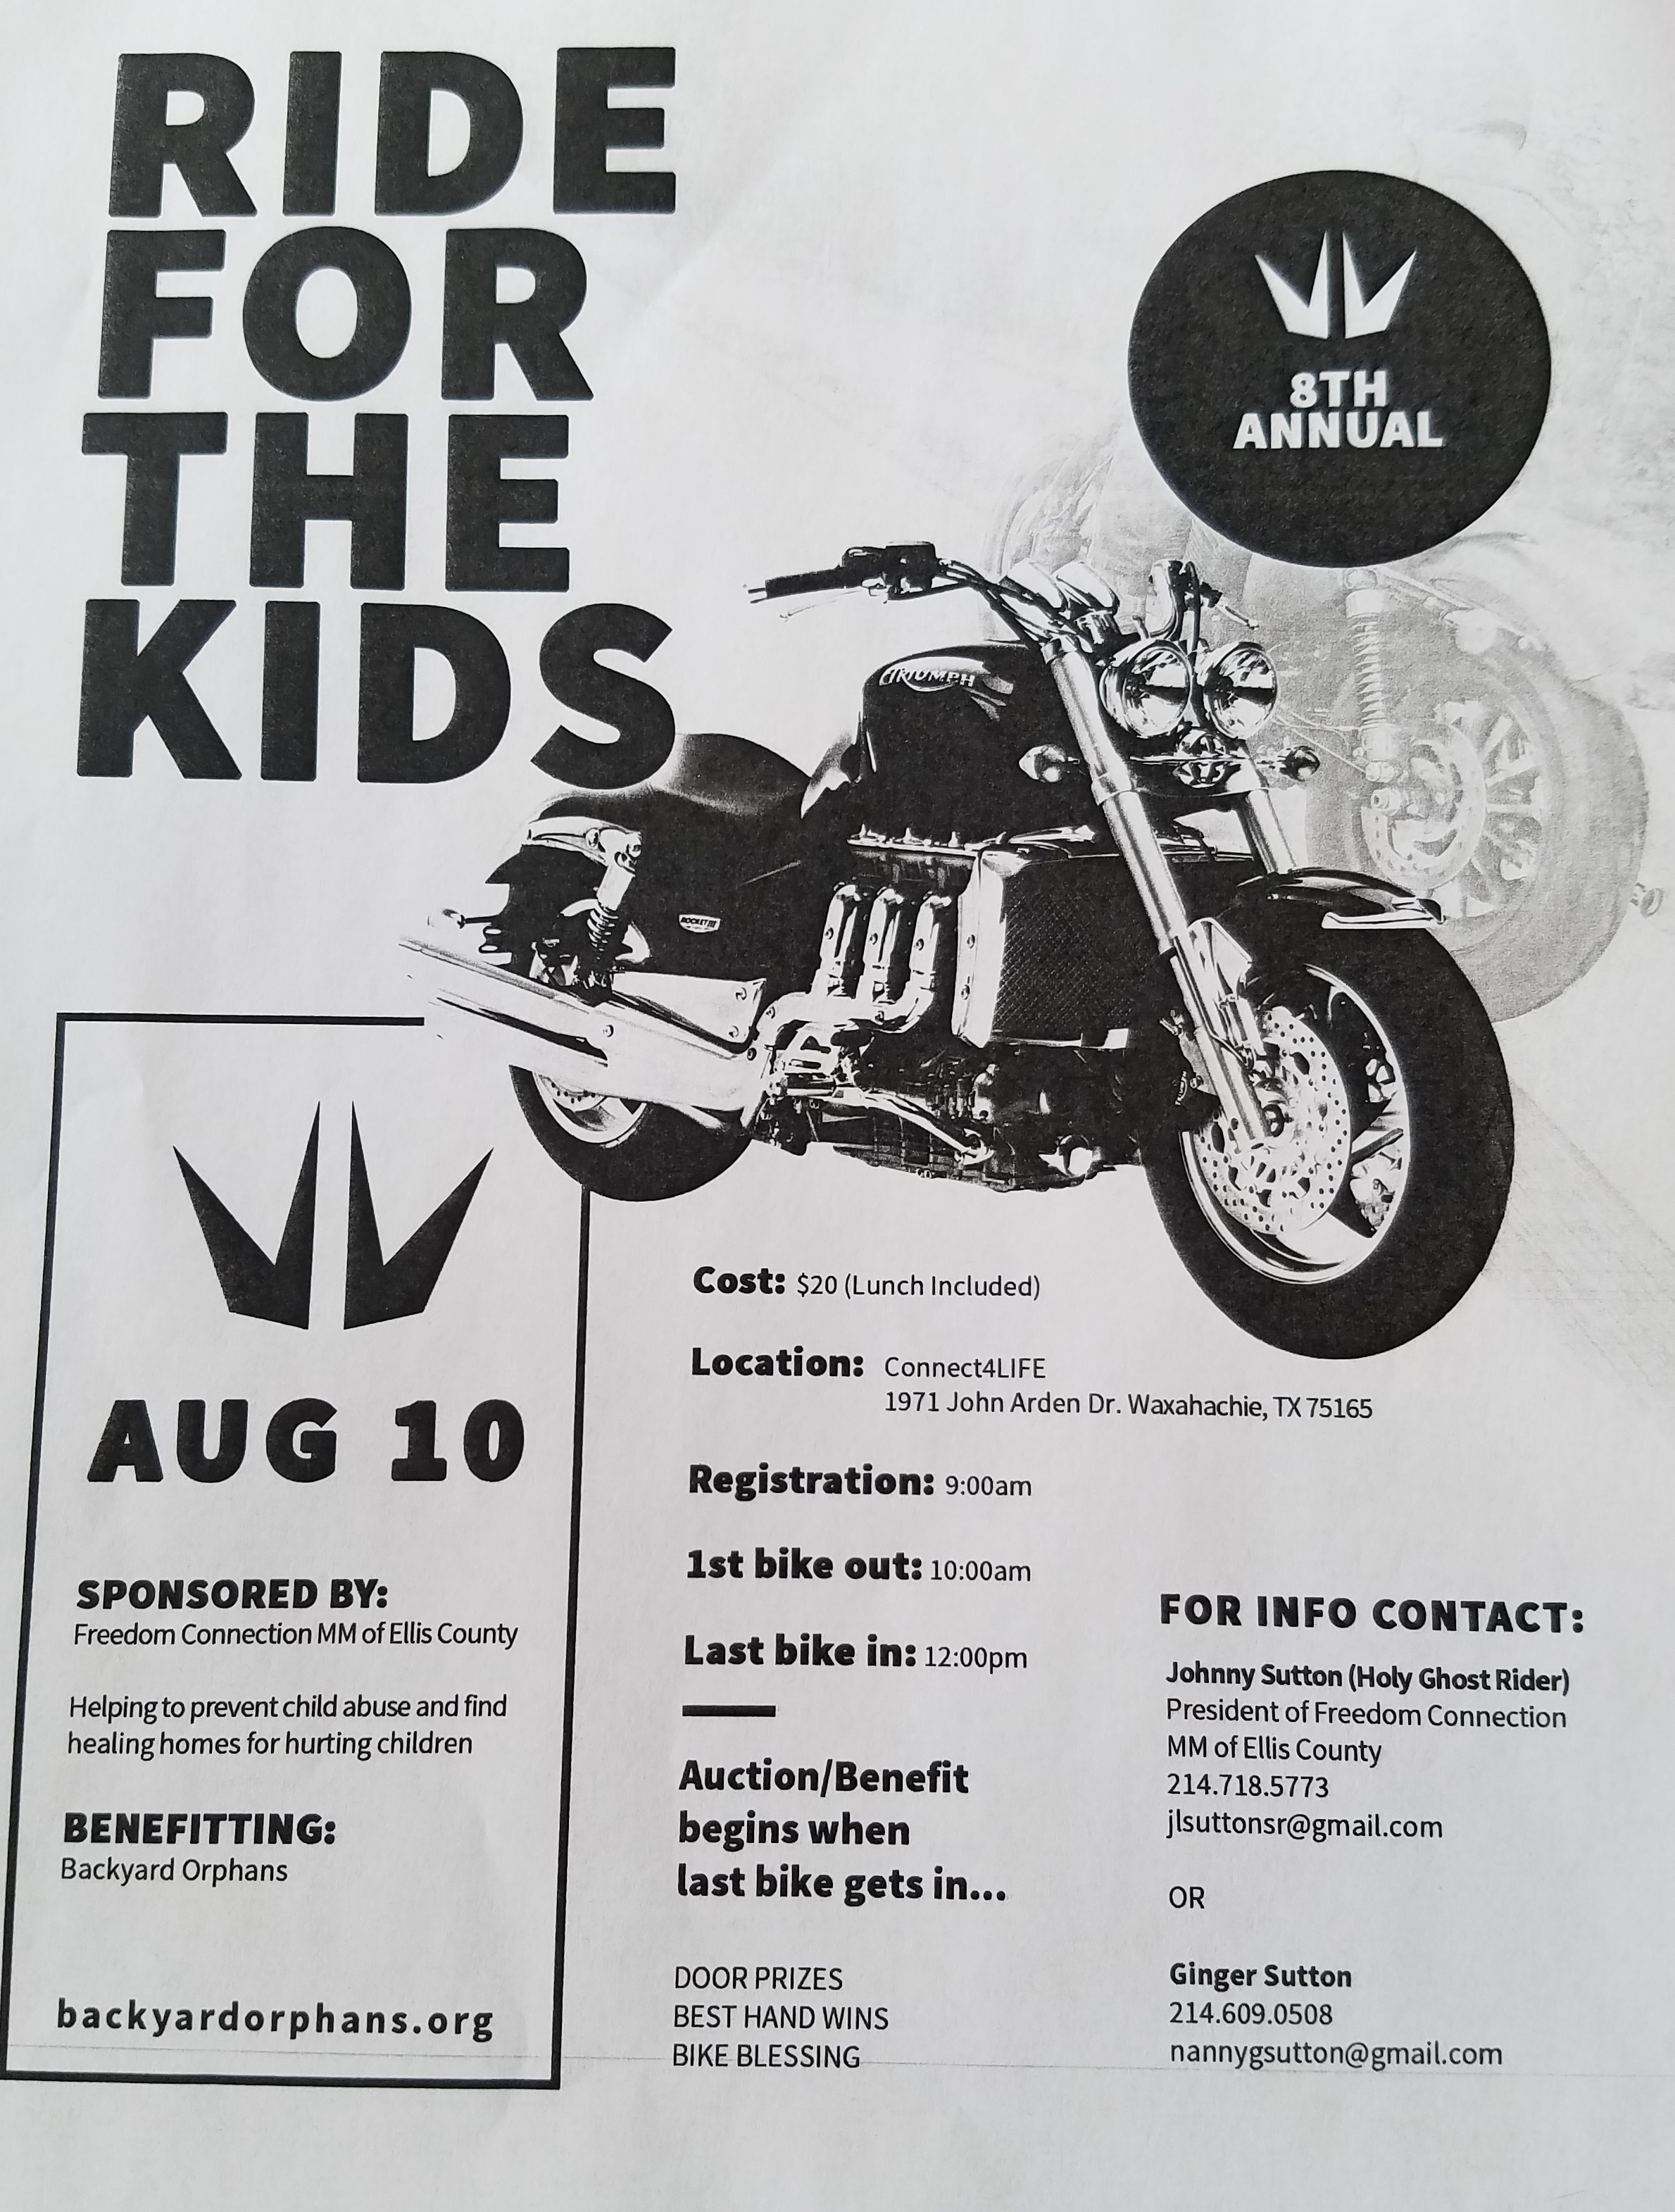 Ride For The Kids August 10 2019.jpg